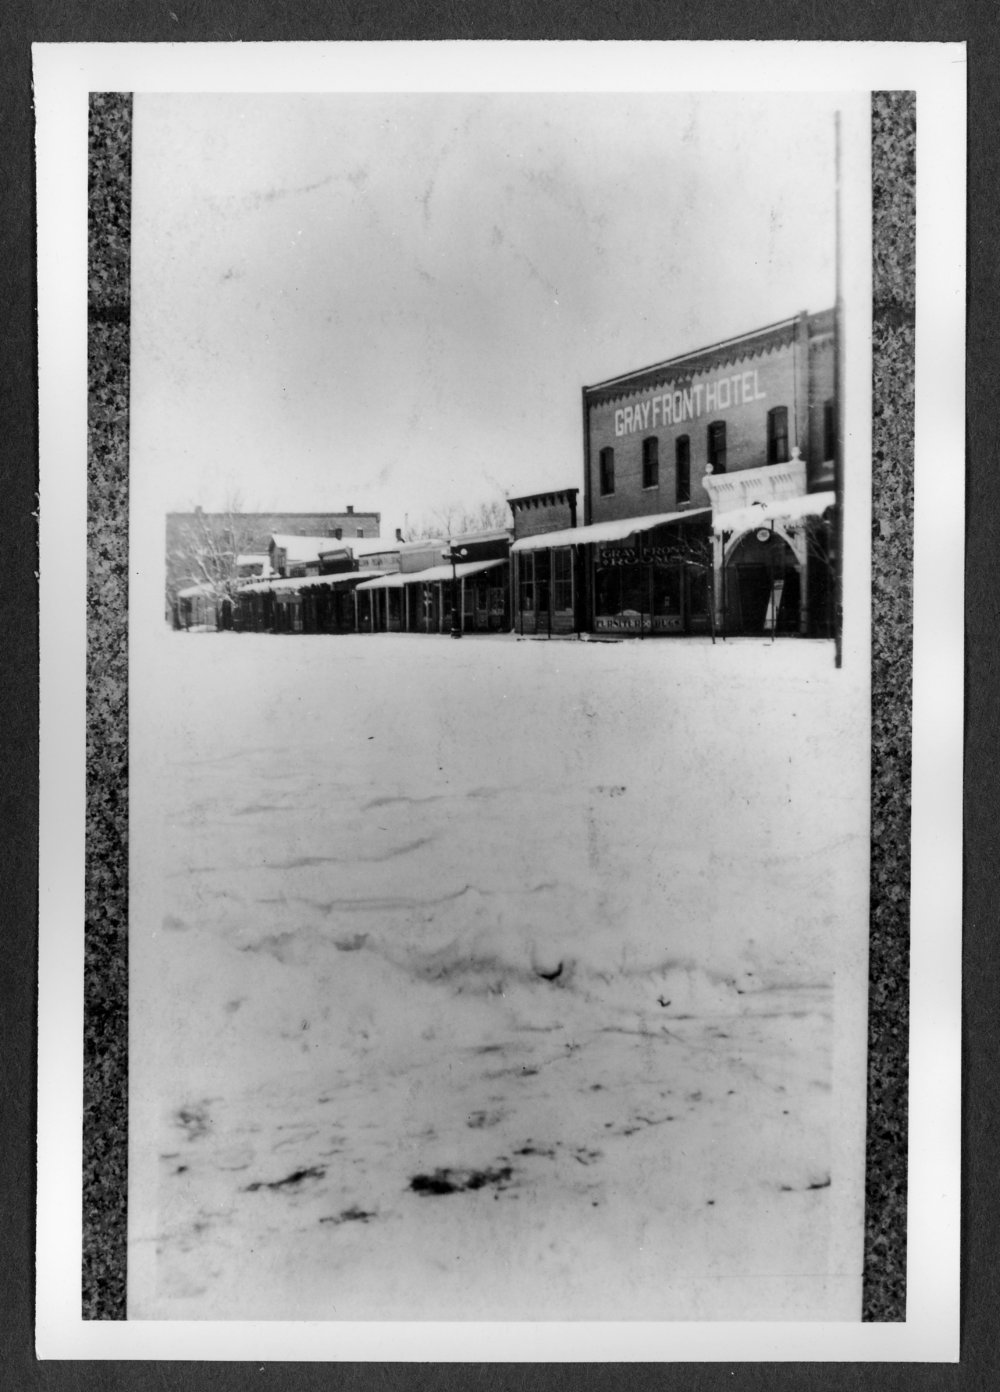 Scenes of Sherman County, Kansas - East side of Main, looking north from 11th Street, Goodland, Kansas.